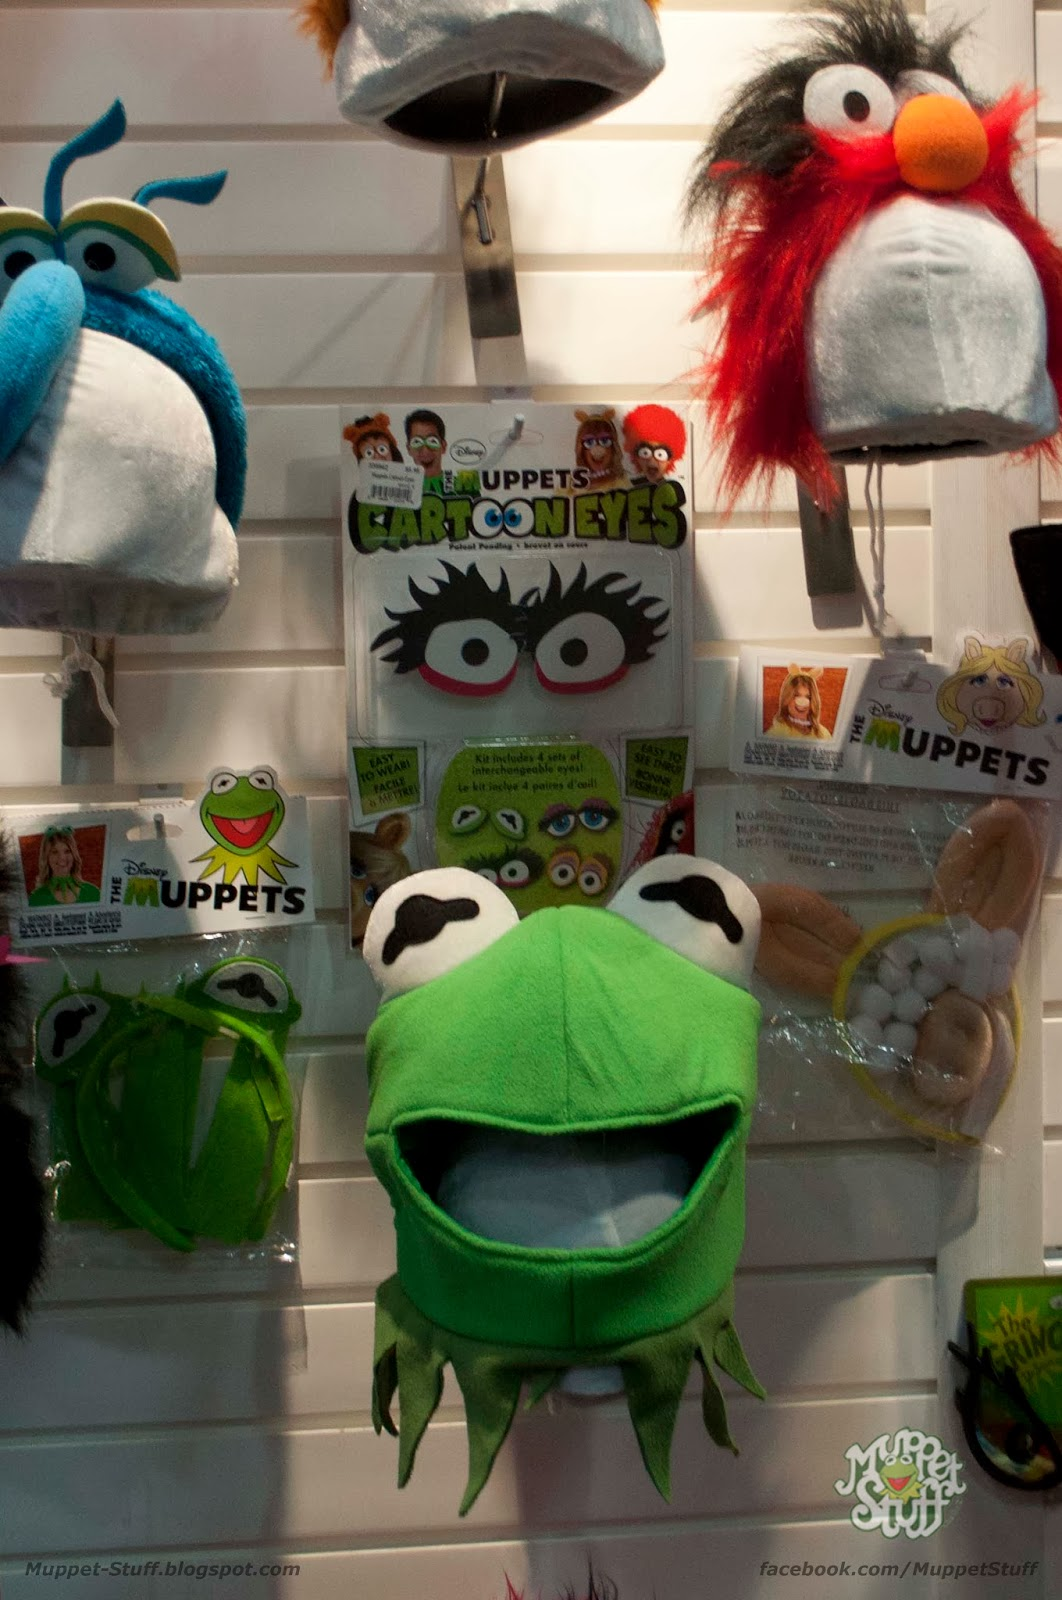 muppet stuff february 2014